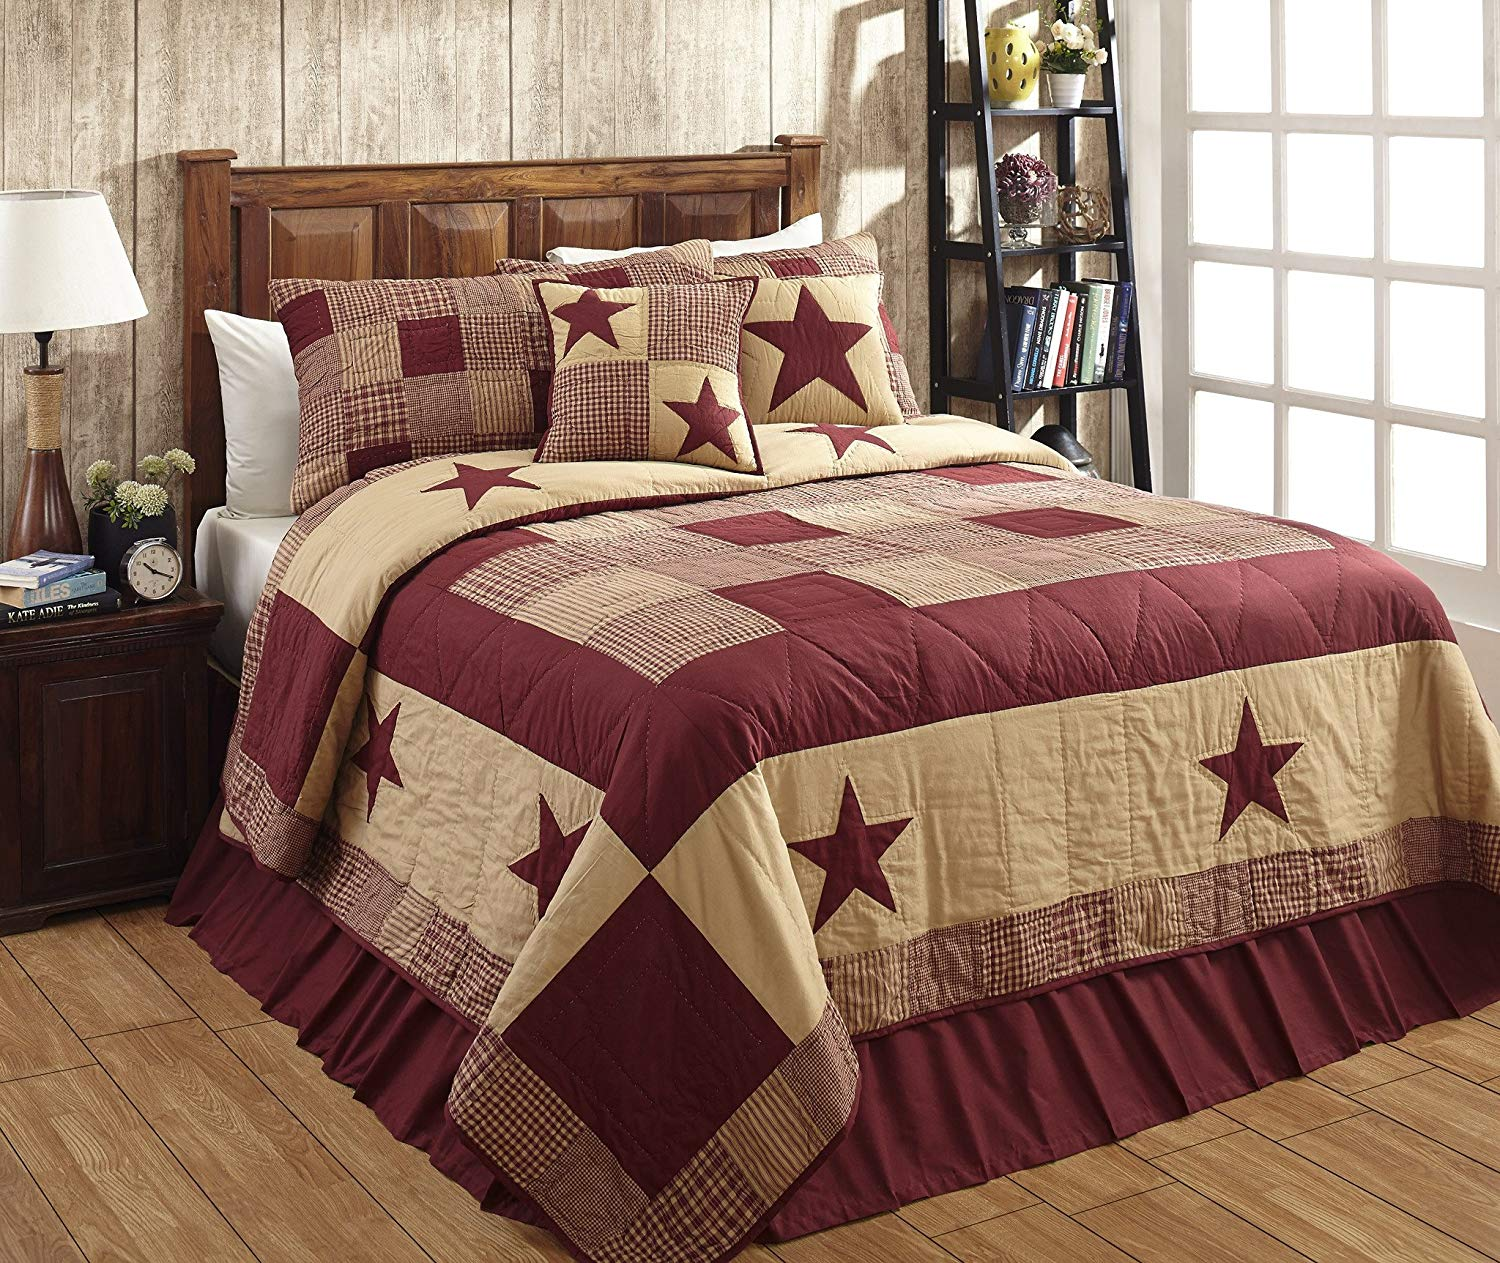 New Country Bedding Sets